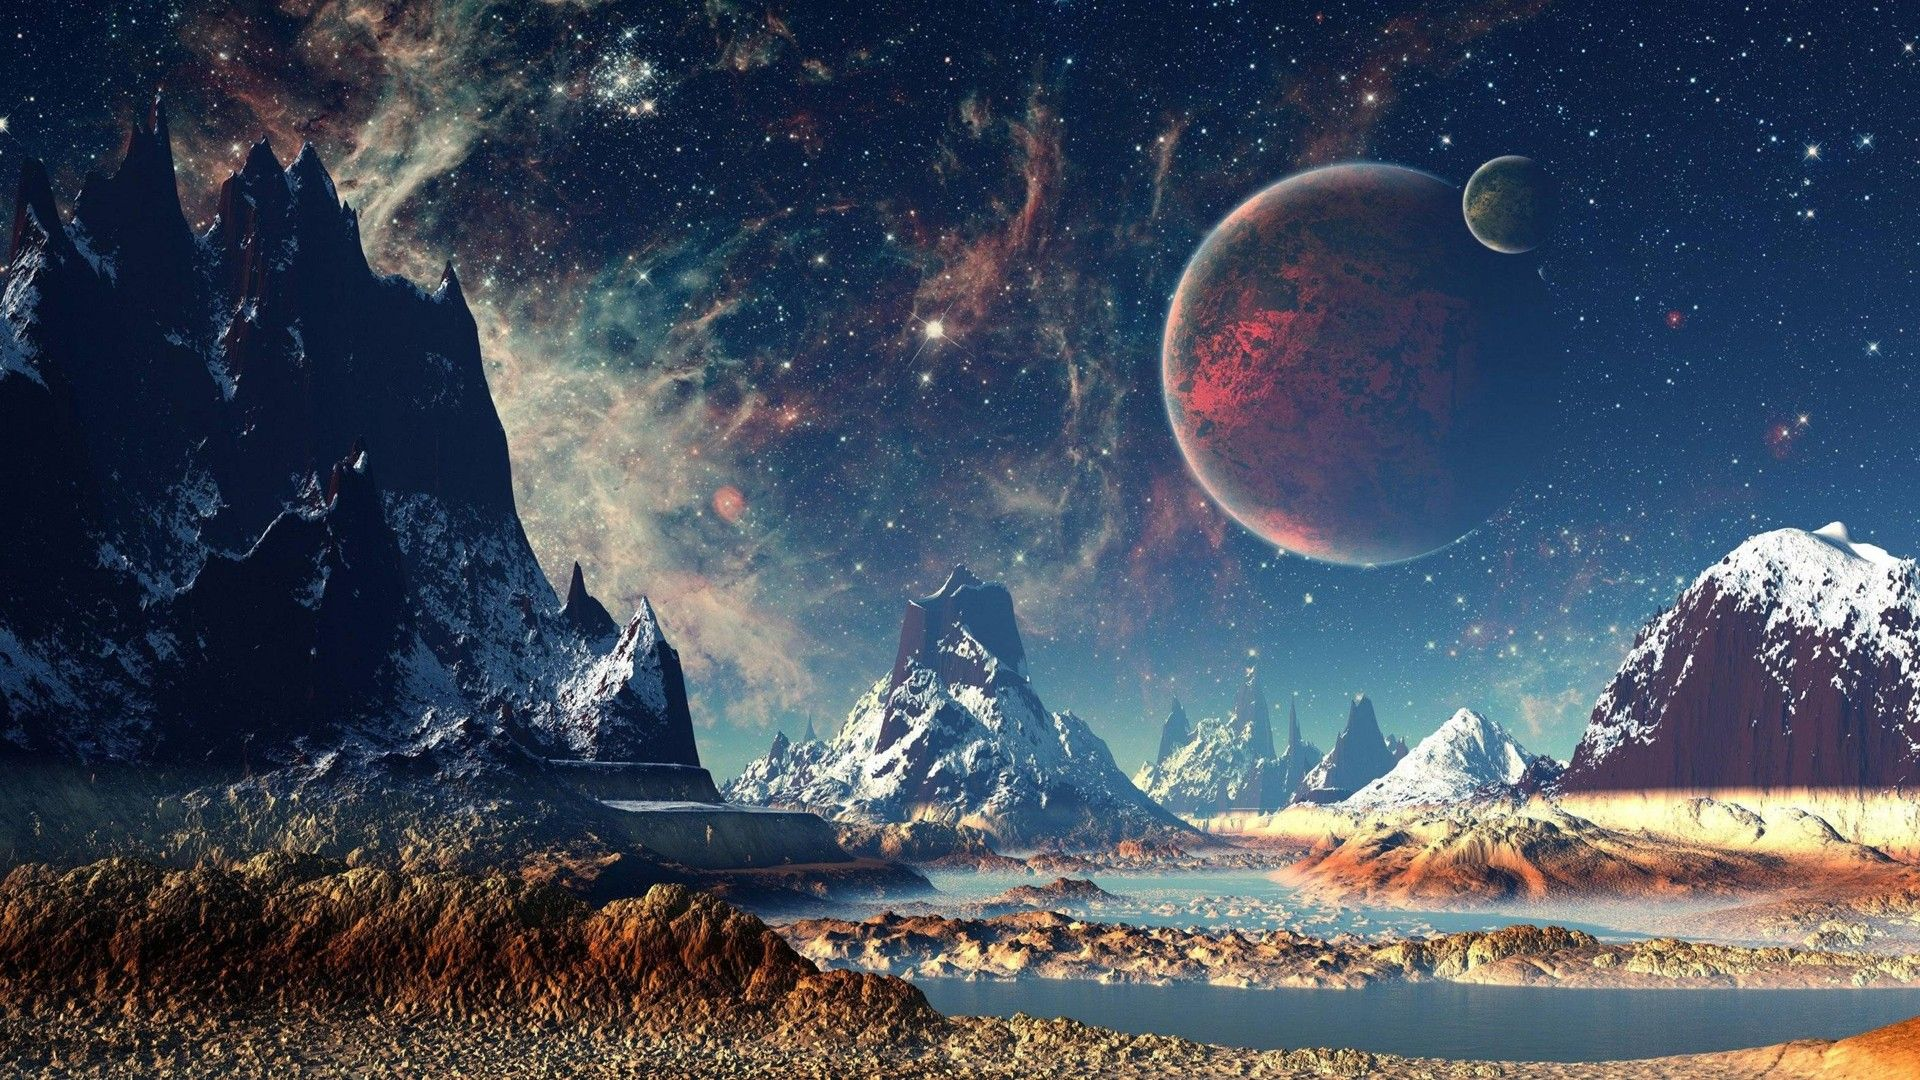 The Landscape Of Another Planet